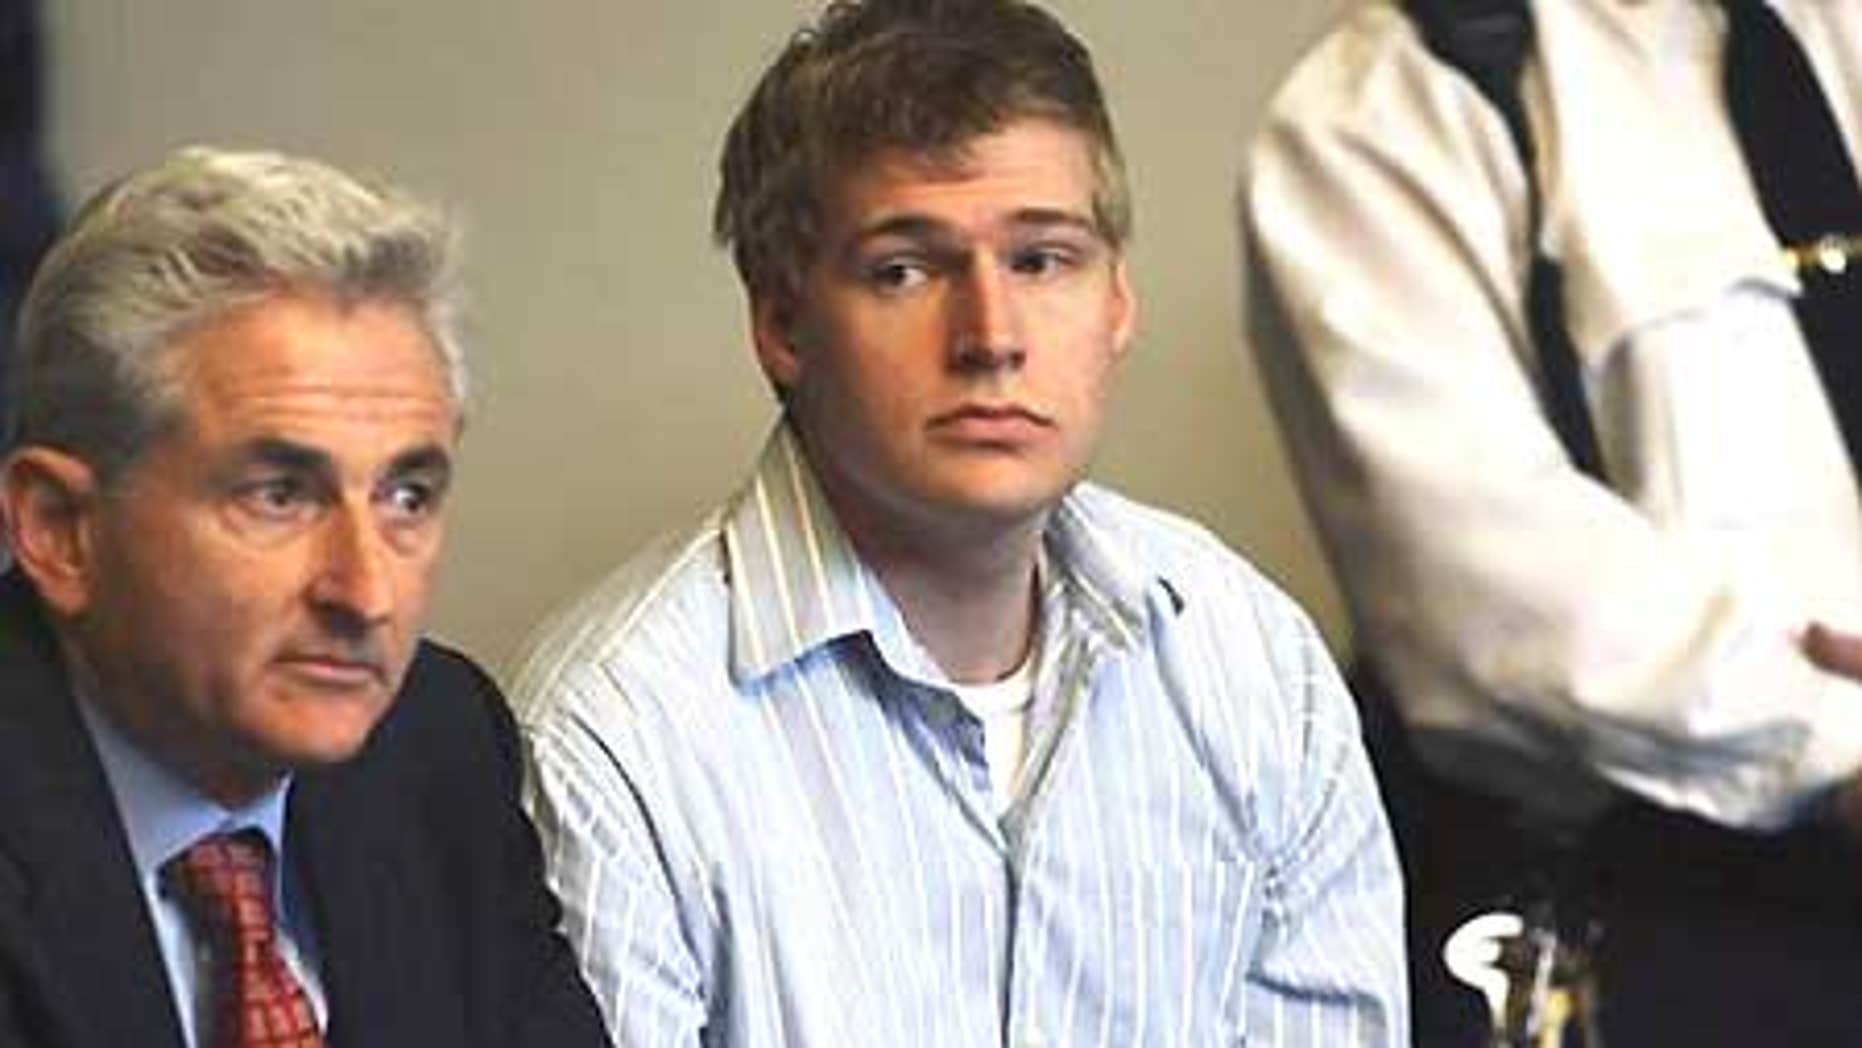 April 21: Boston University medical student Philip Markoff, center, sits with his lawyer John Salsberg during his arraignment in Boston.